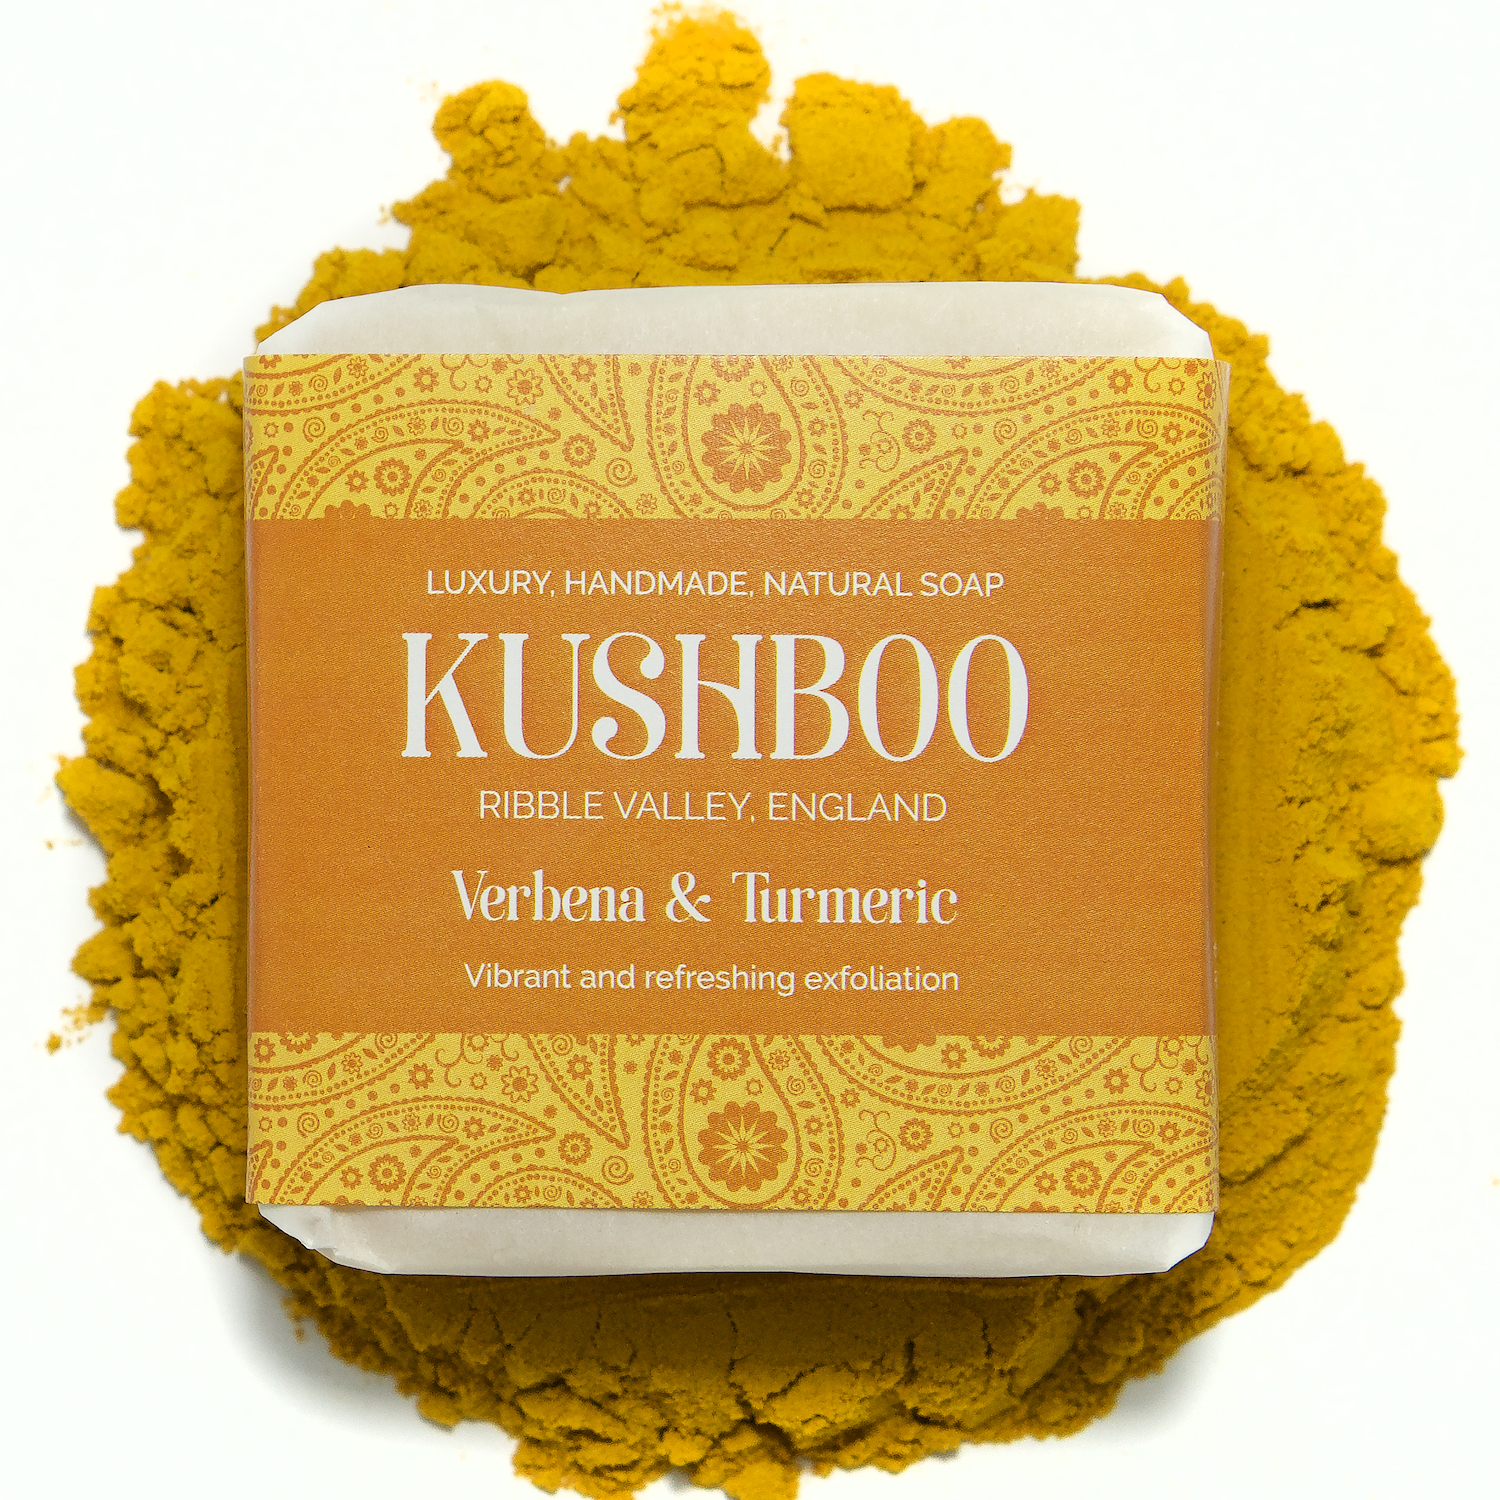 Kushboo Verbena and Turmeric Soap